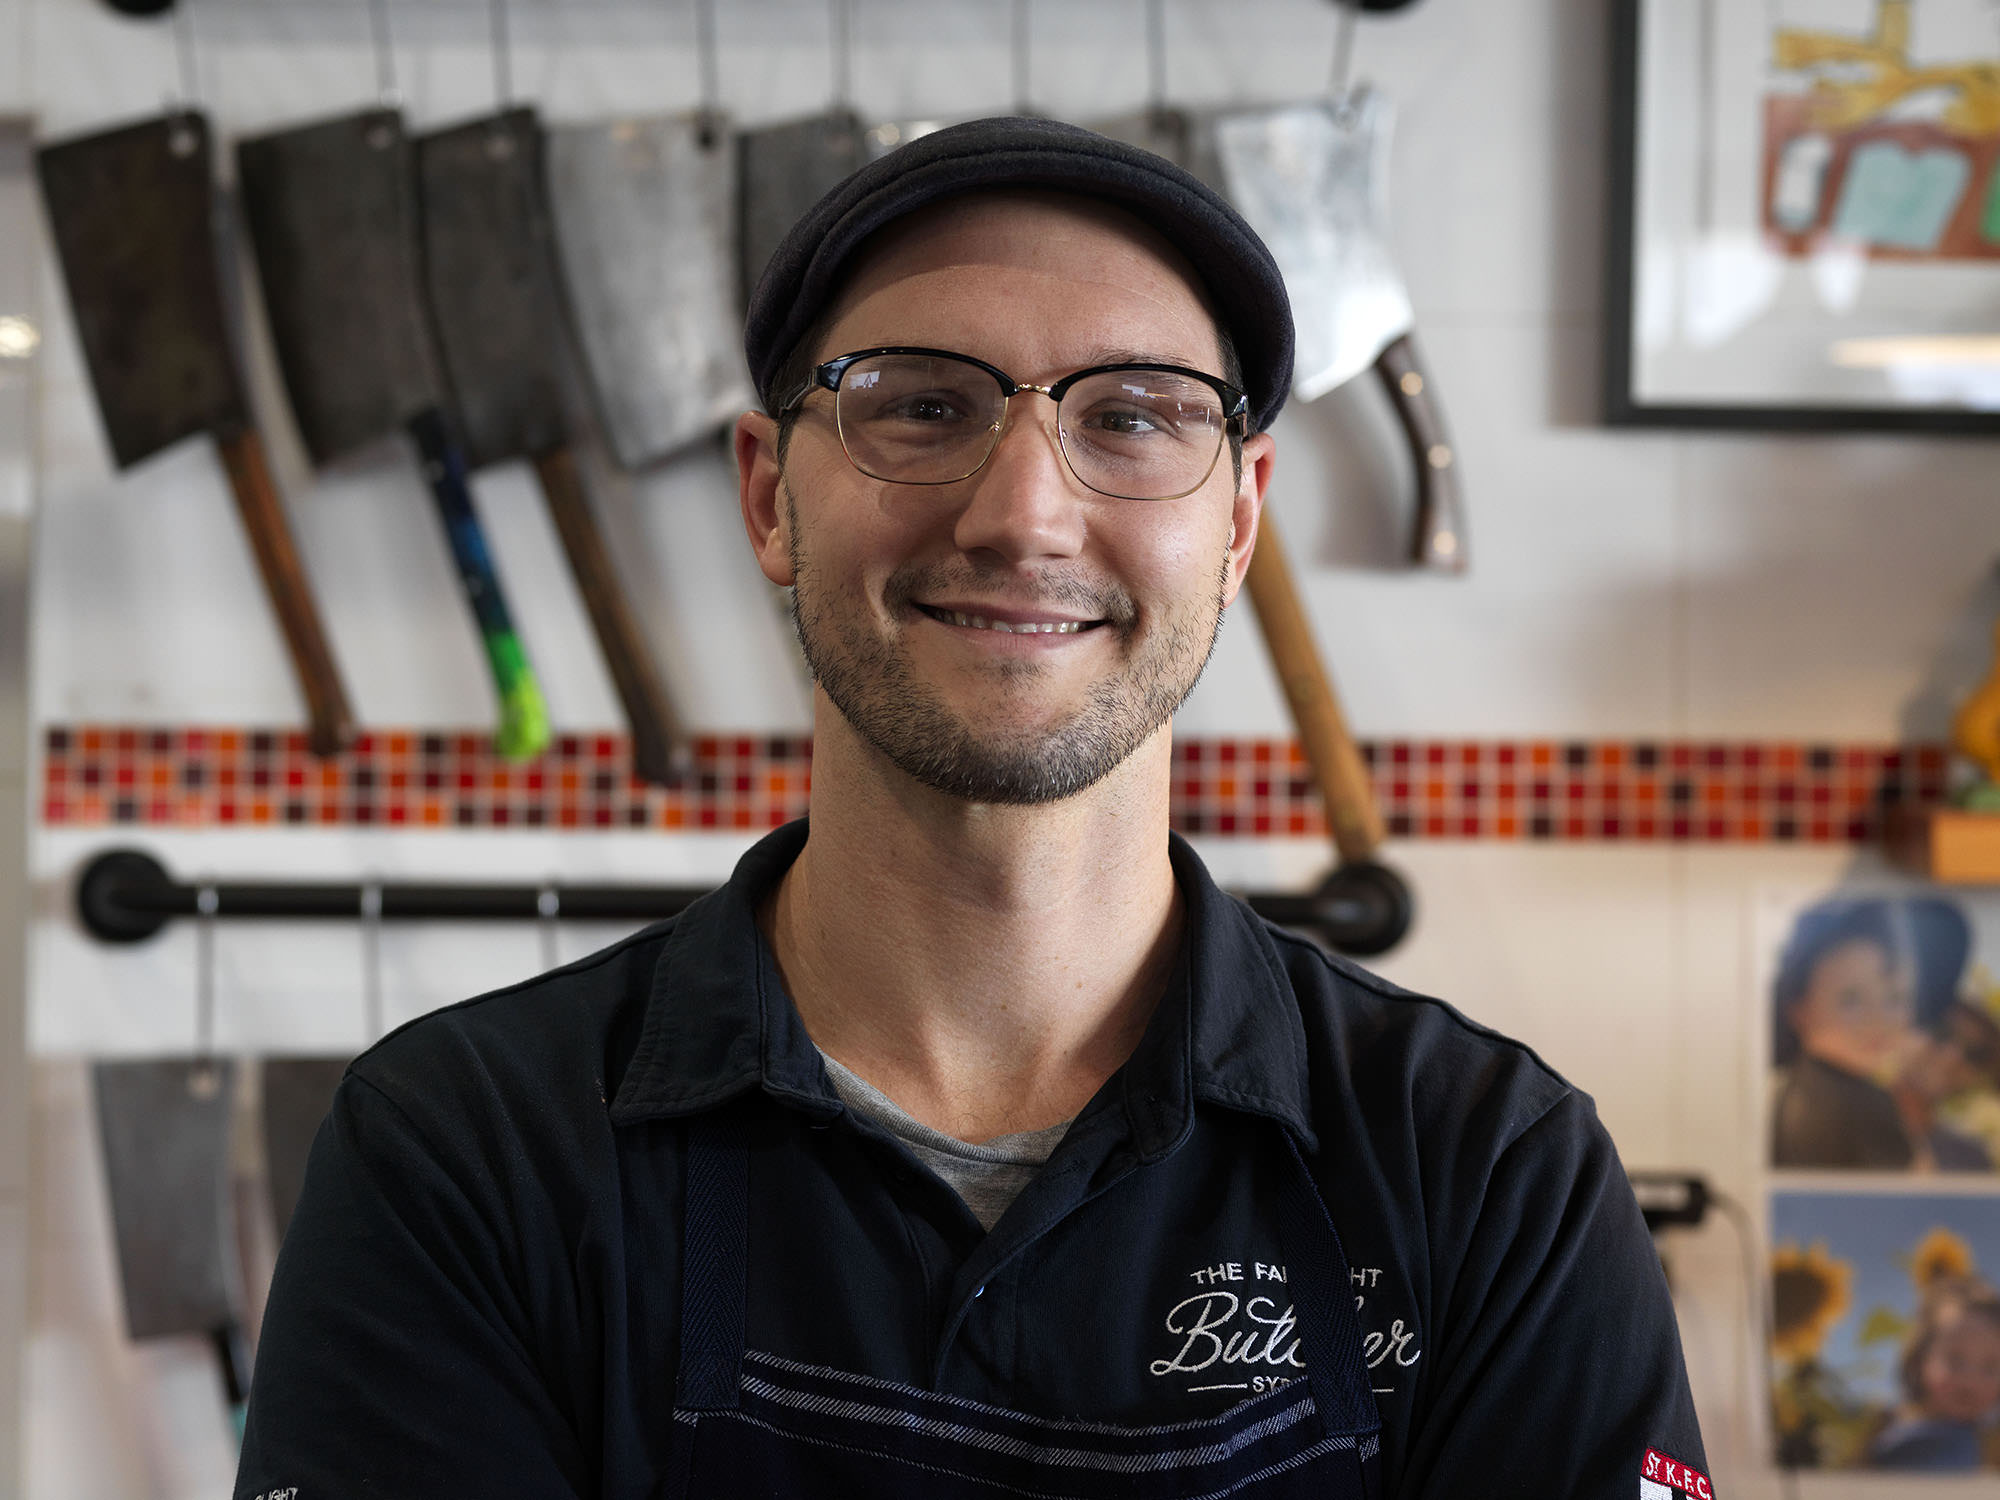 Butcher Ryan Watson spent four years as a jackaroo before taking on a butchery apprenticeship and purchasing his own shop in 2016.